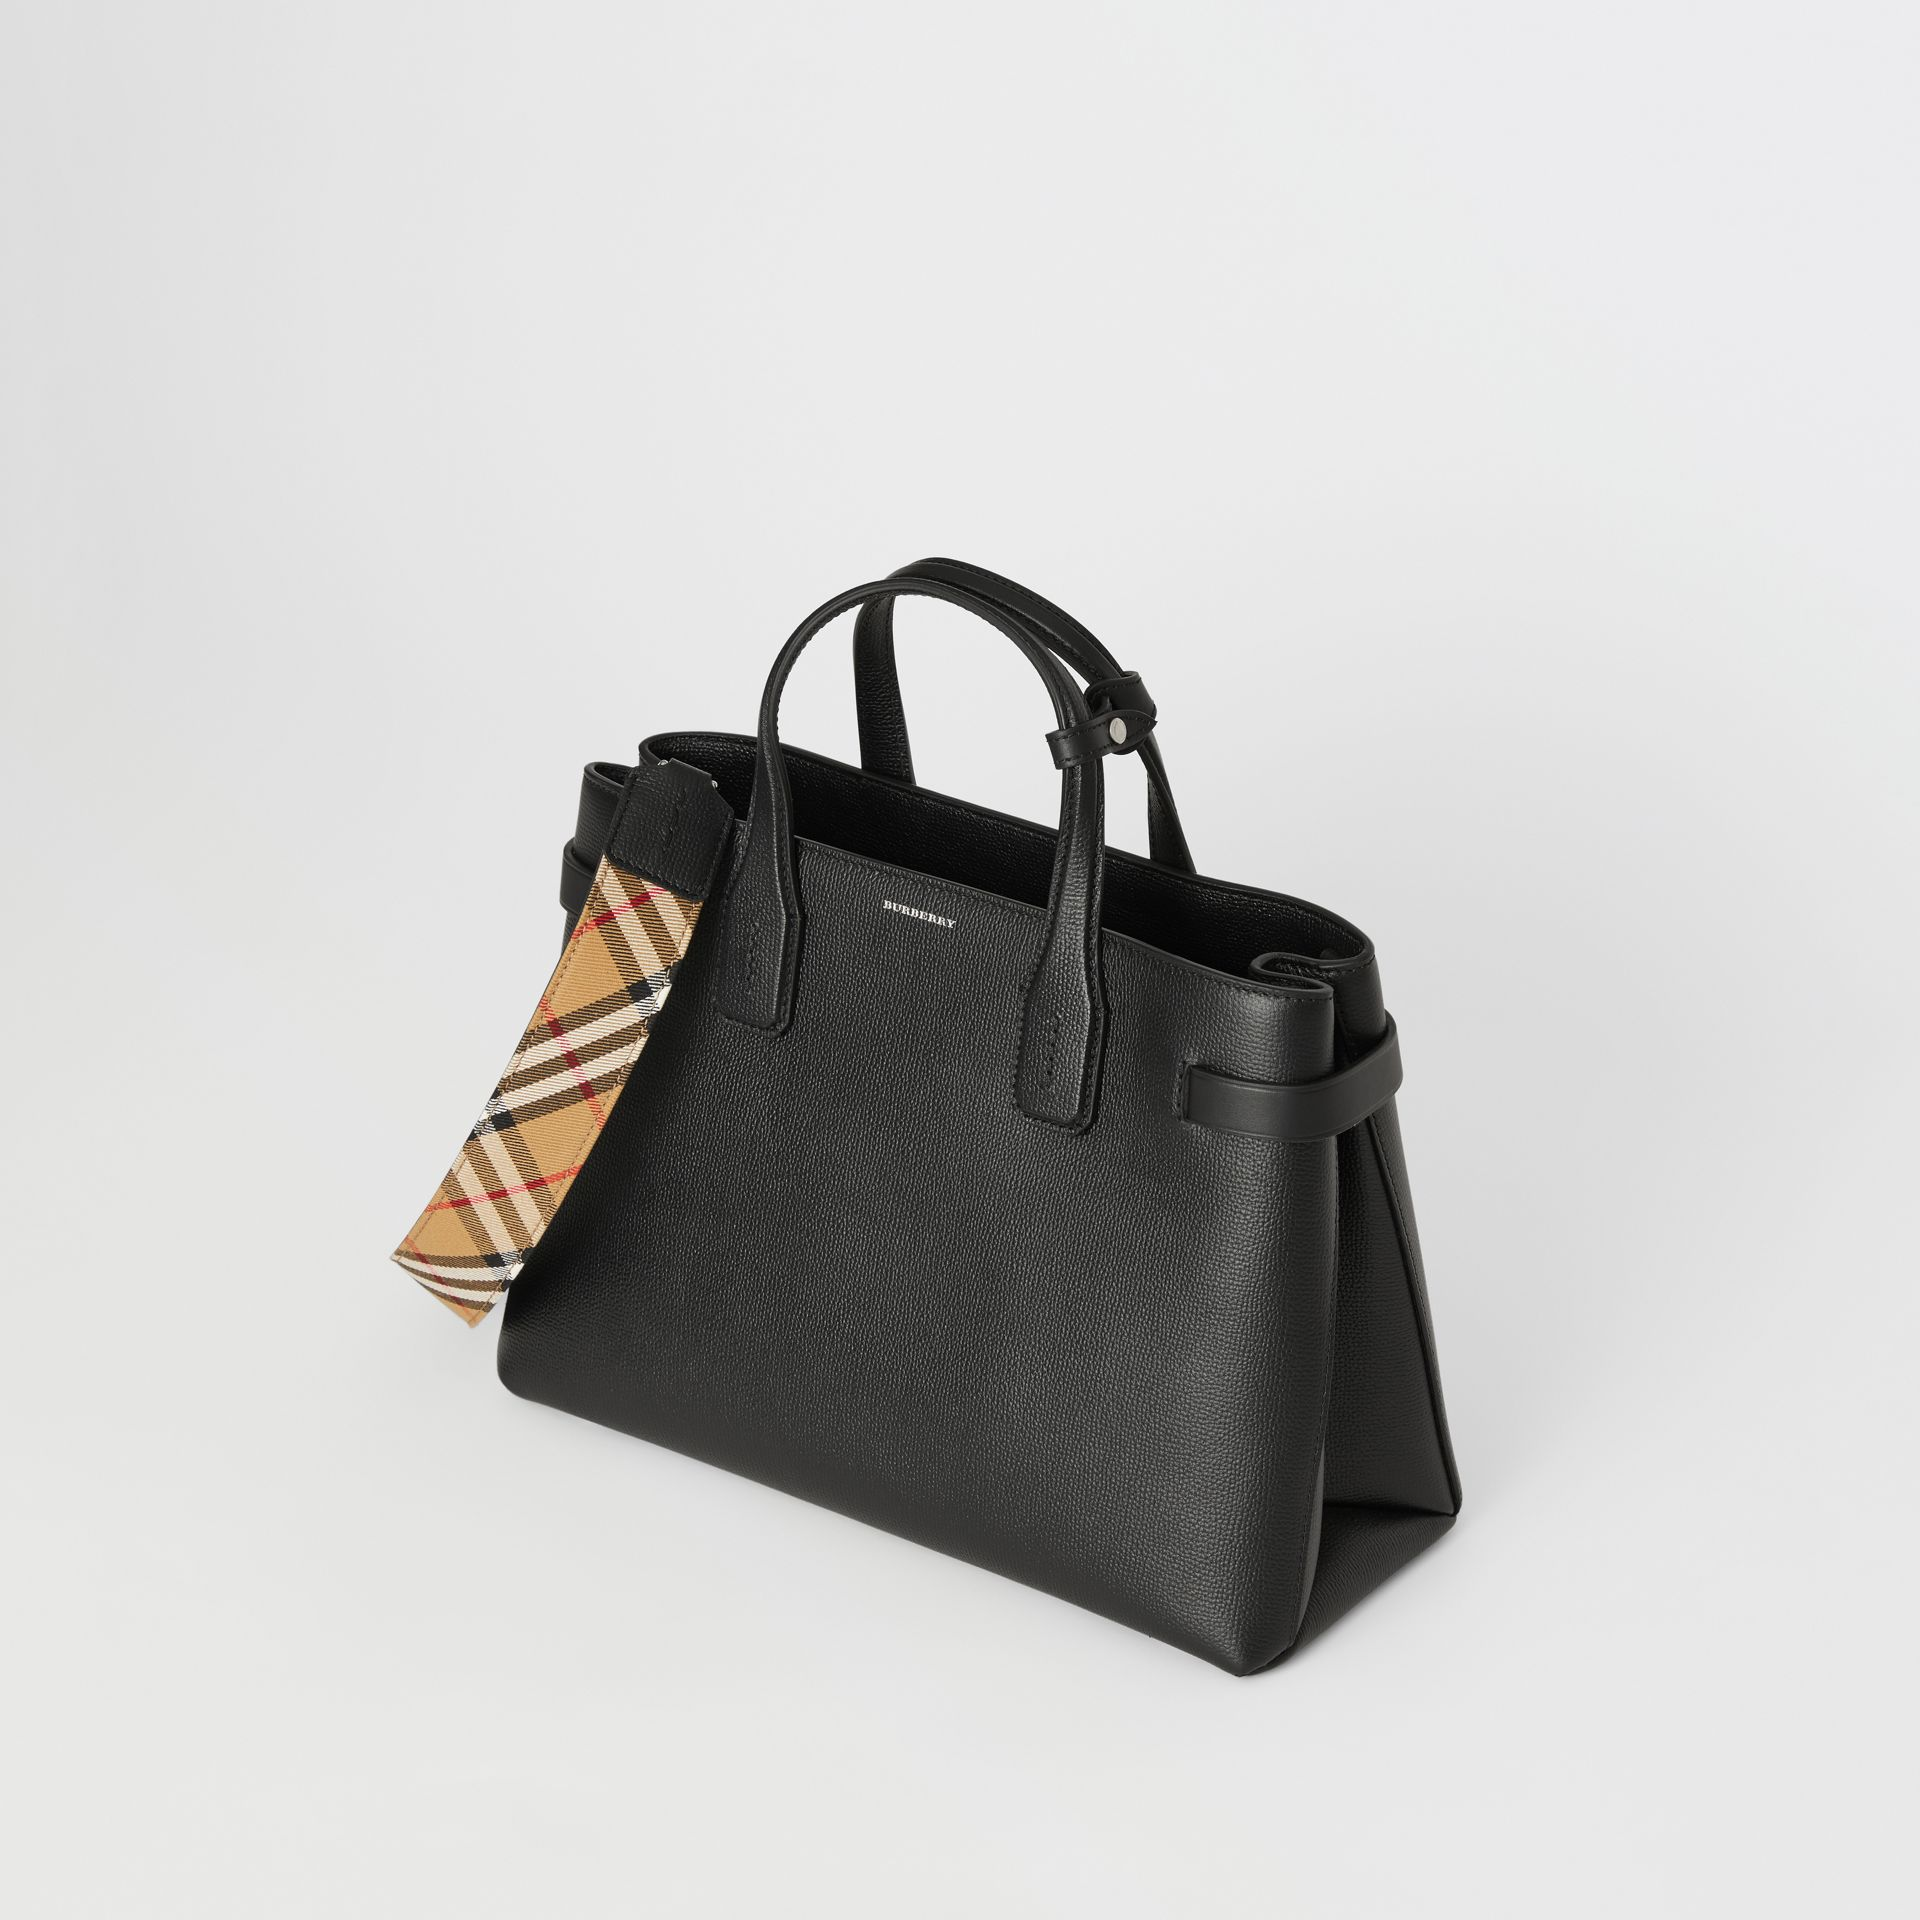 Sac The Banner moyen en cuir et motif Vintage check (Noir) - Femme | Burberry - photo de la galerie 4